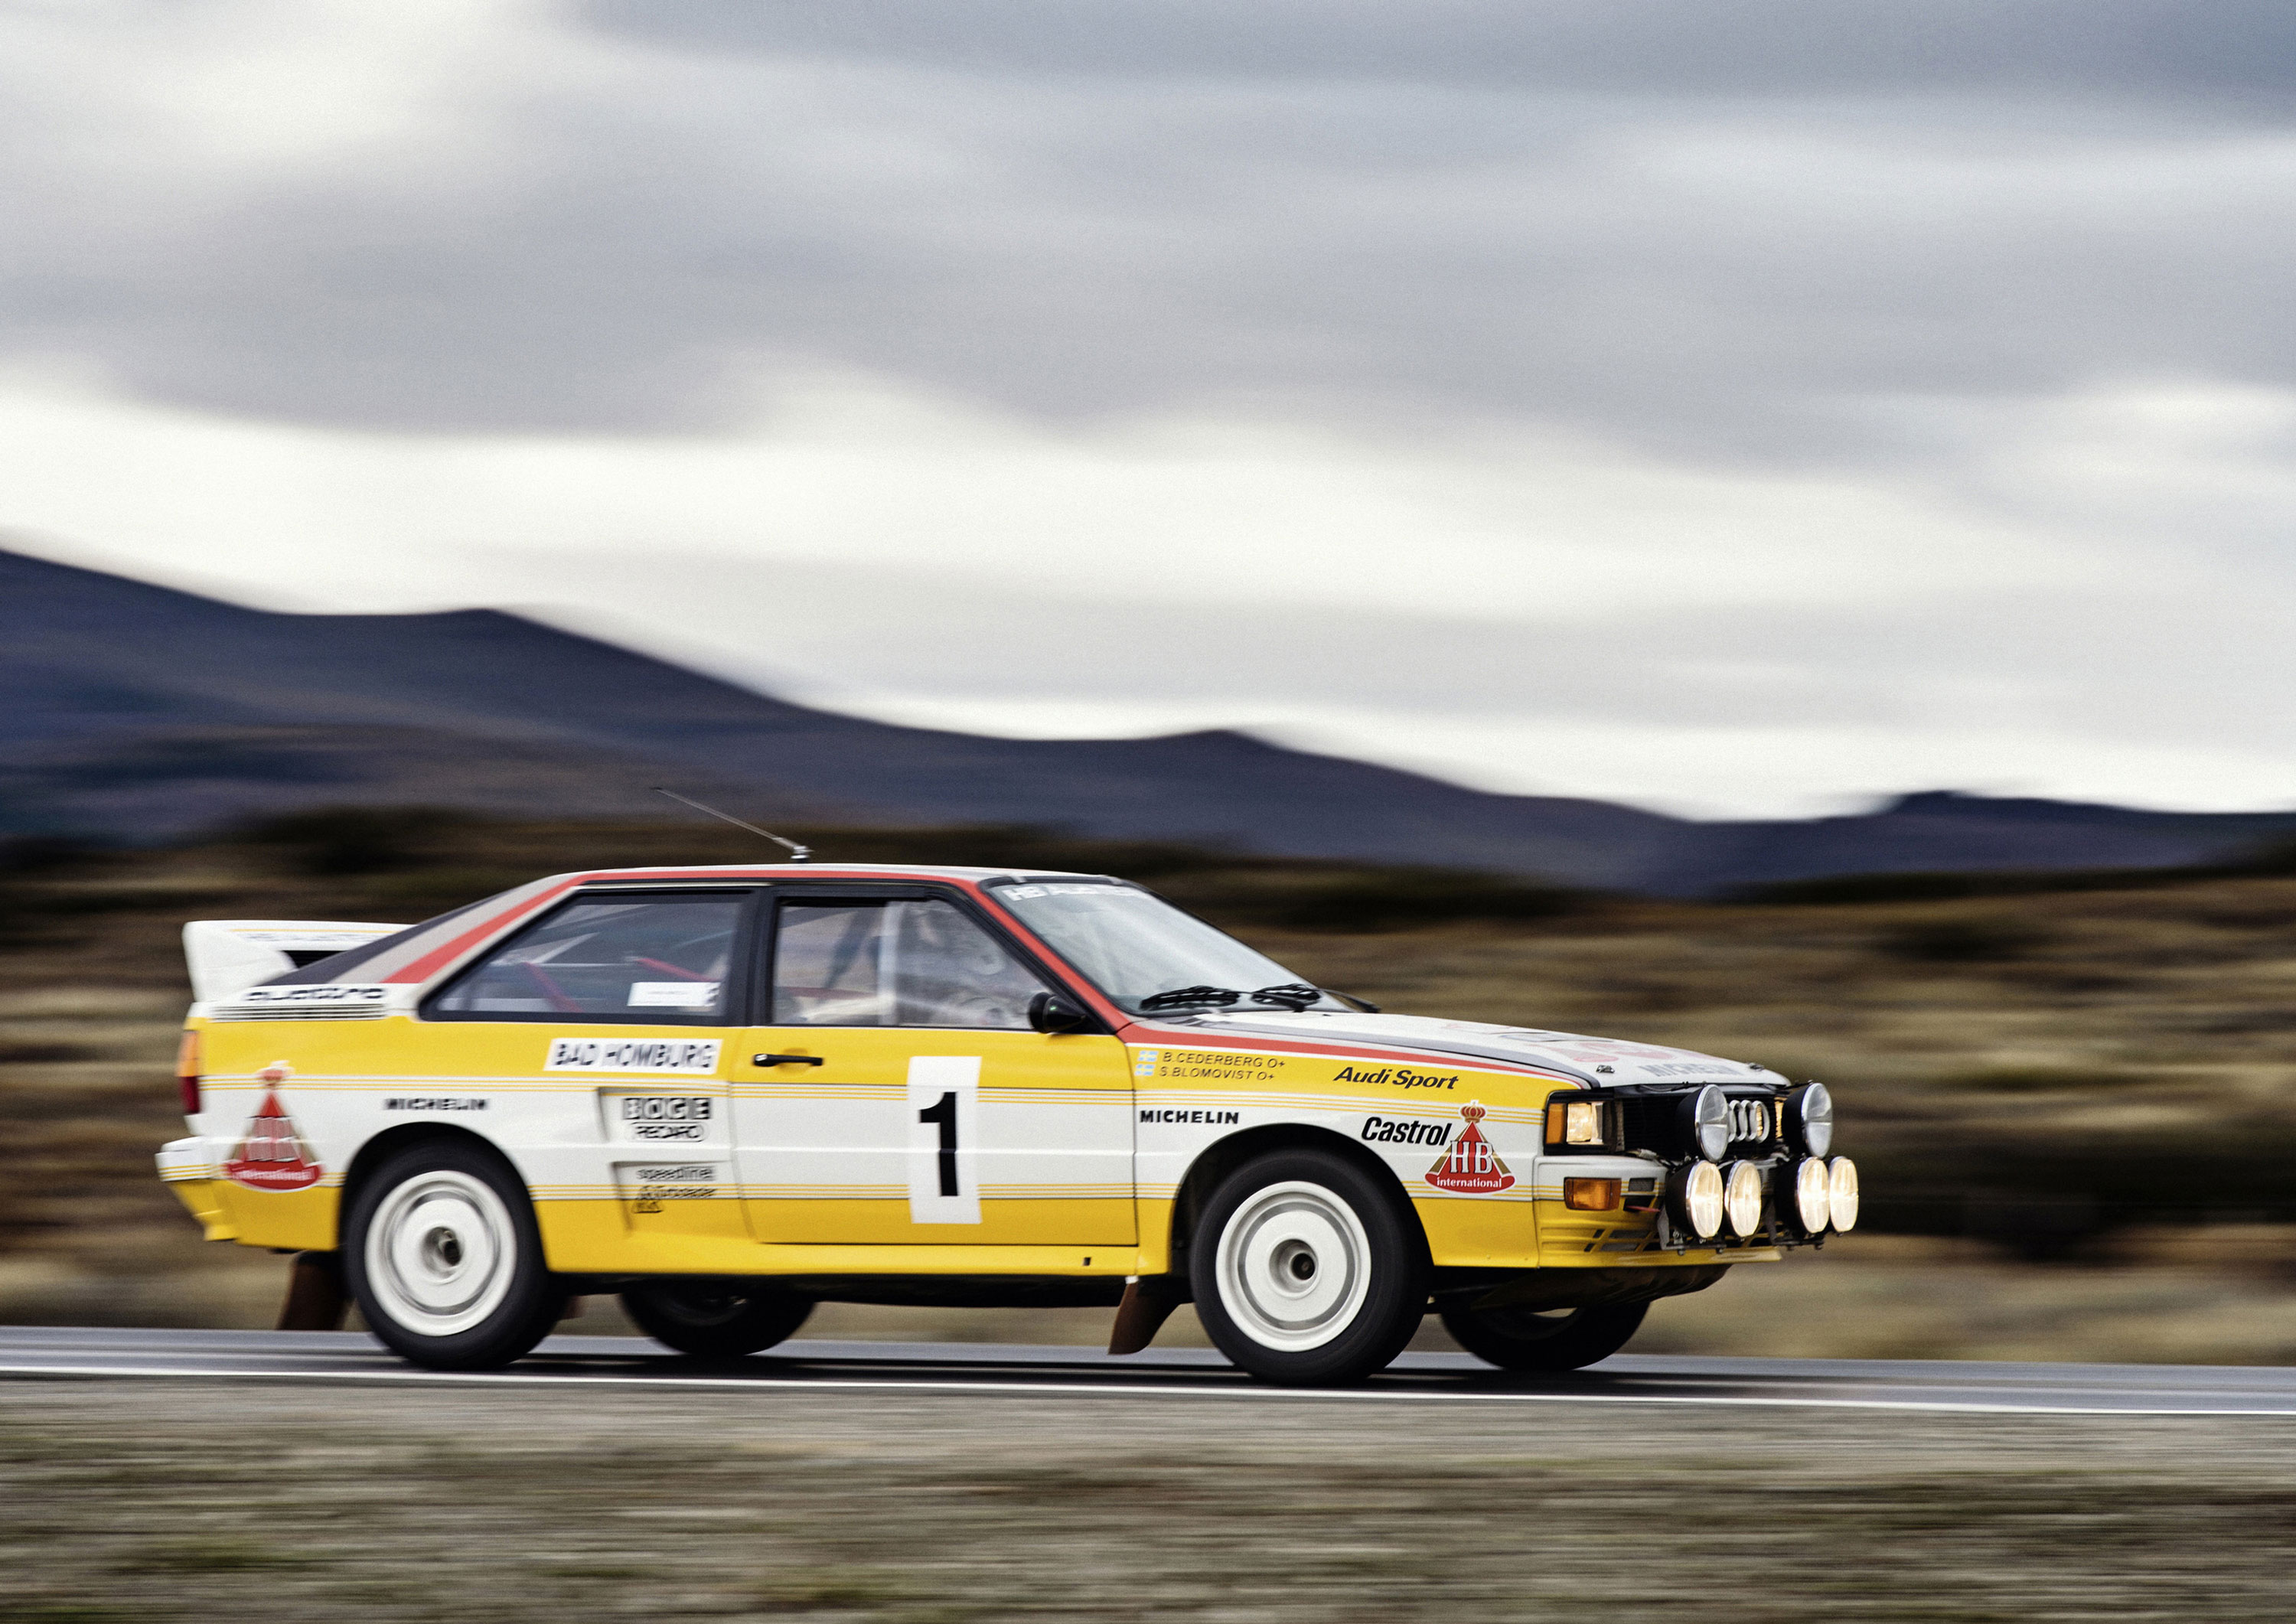 1983 Audi quattro A2, Group B